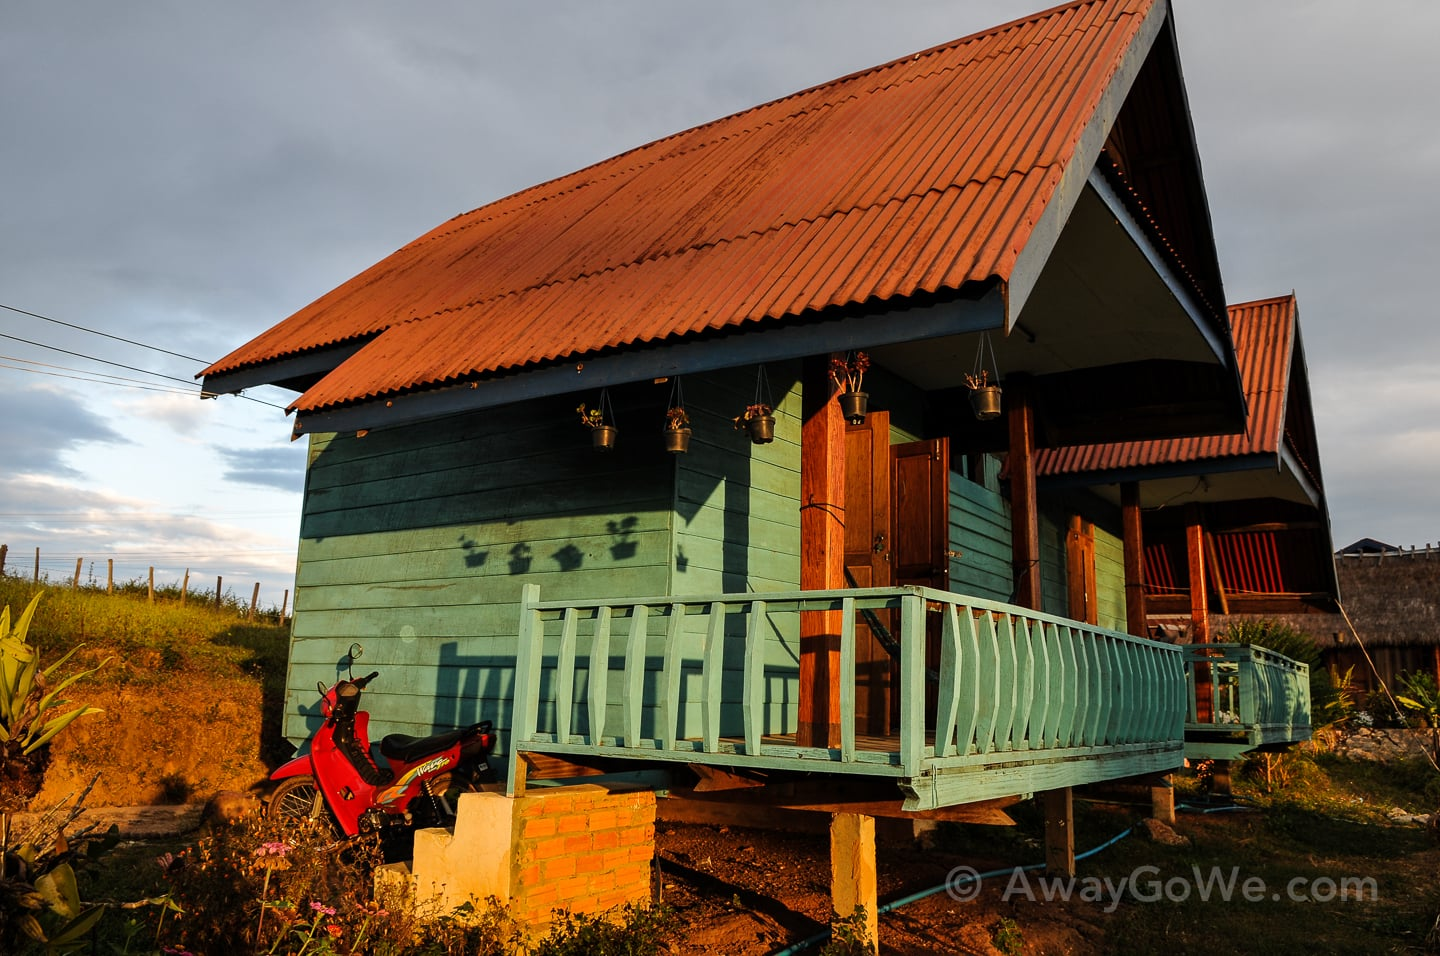 motorbike near wooden bungalow on thakhek loop in laos